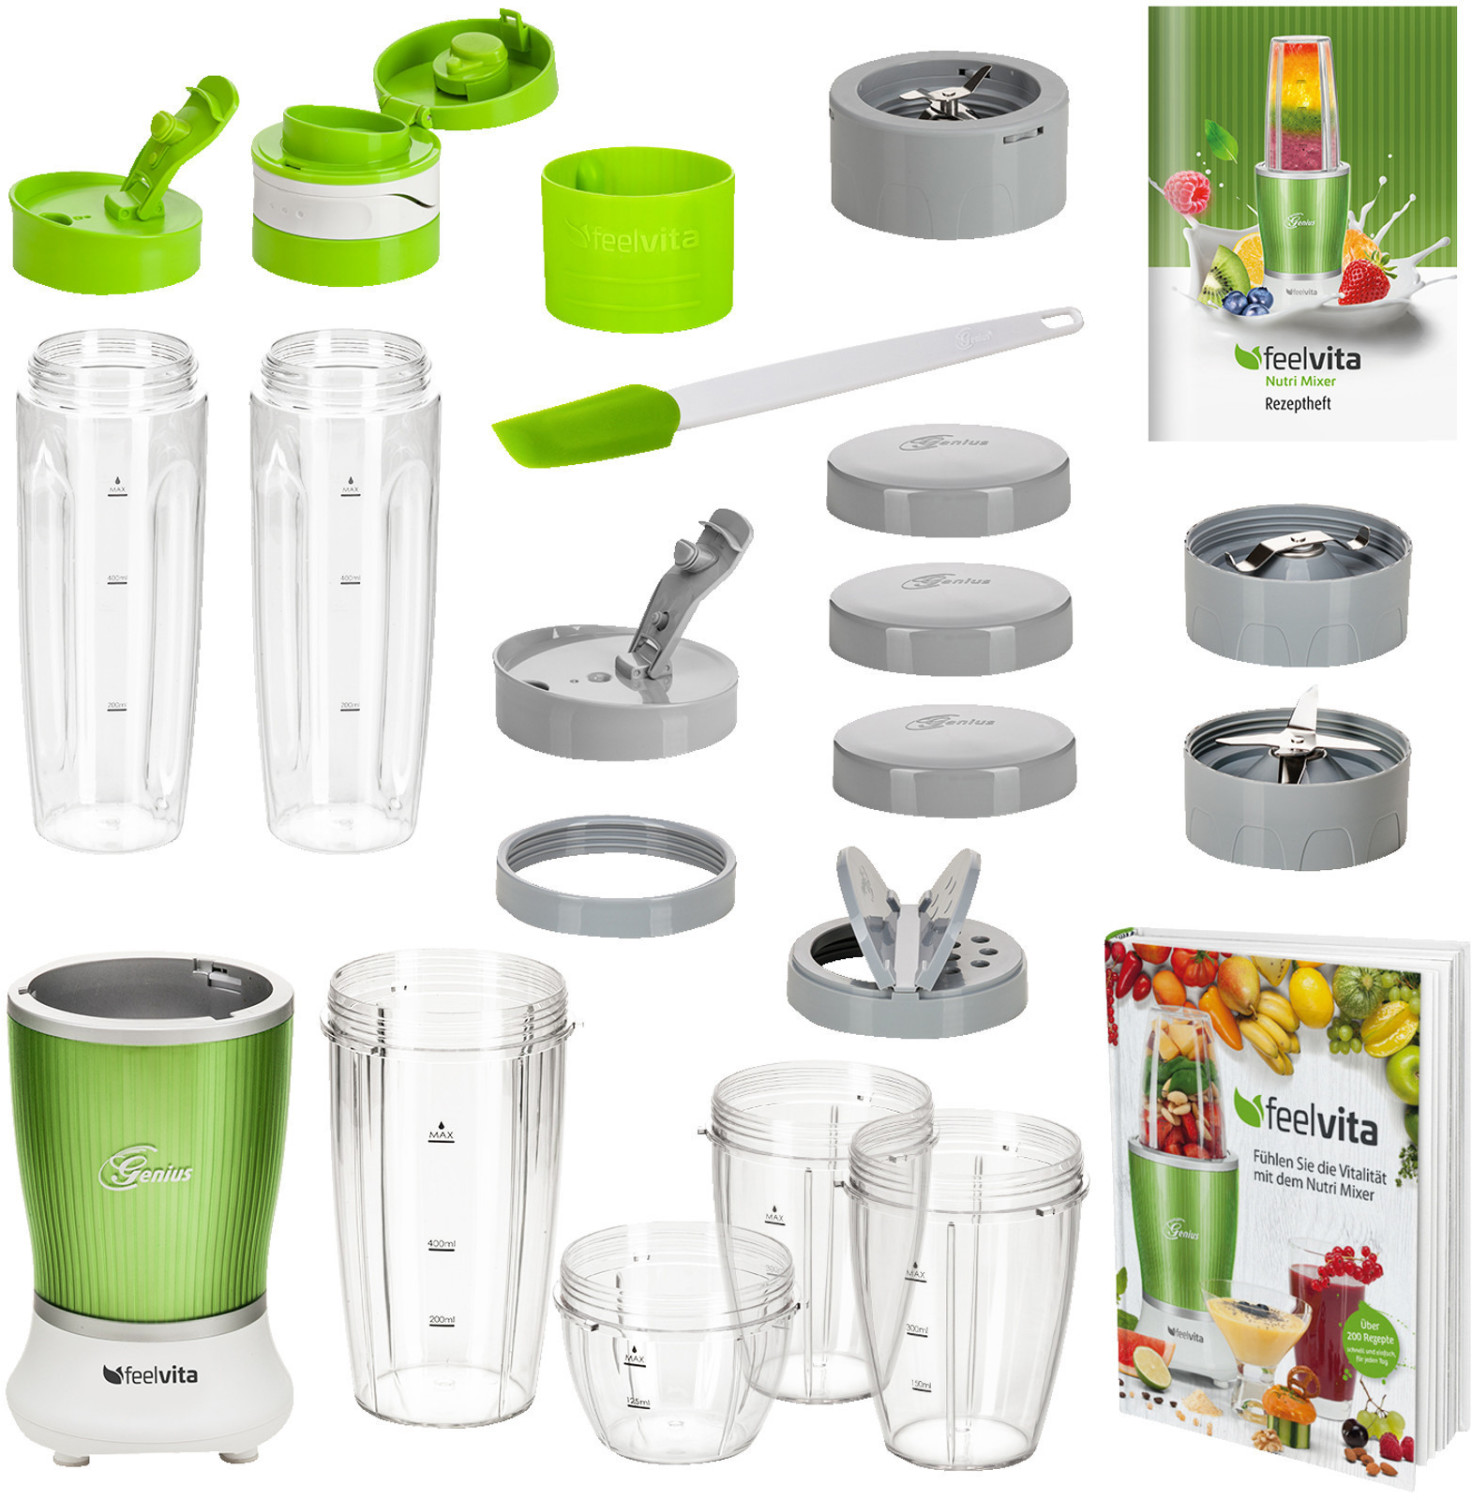 #feelvita Nutri Mixer 22 tlg. 31037#